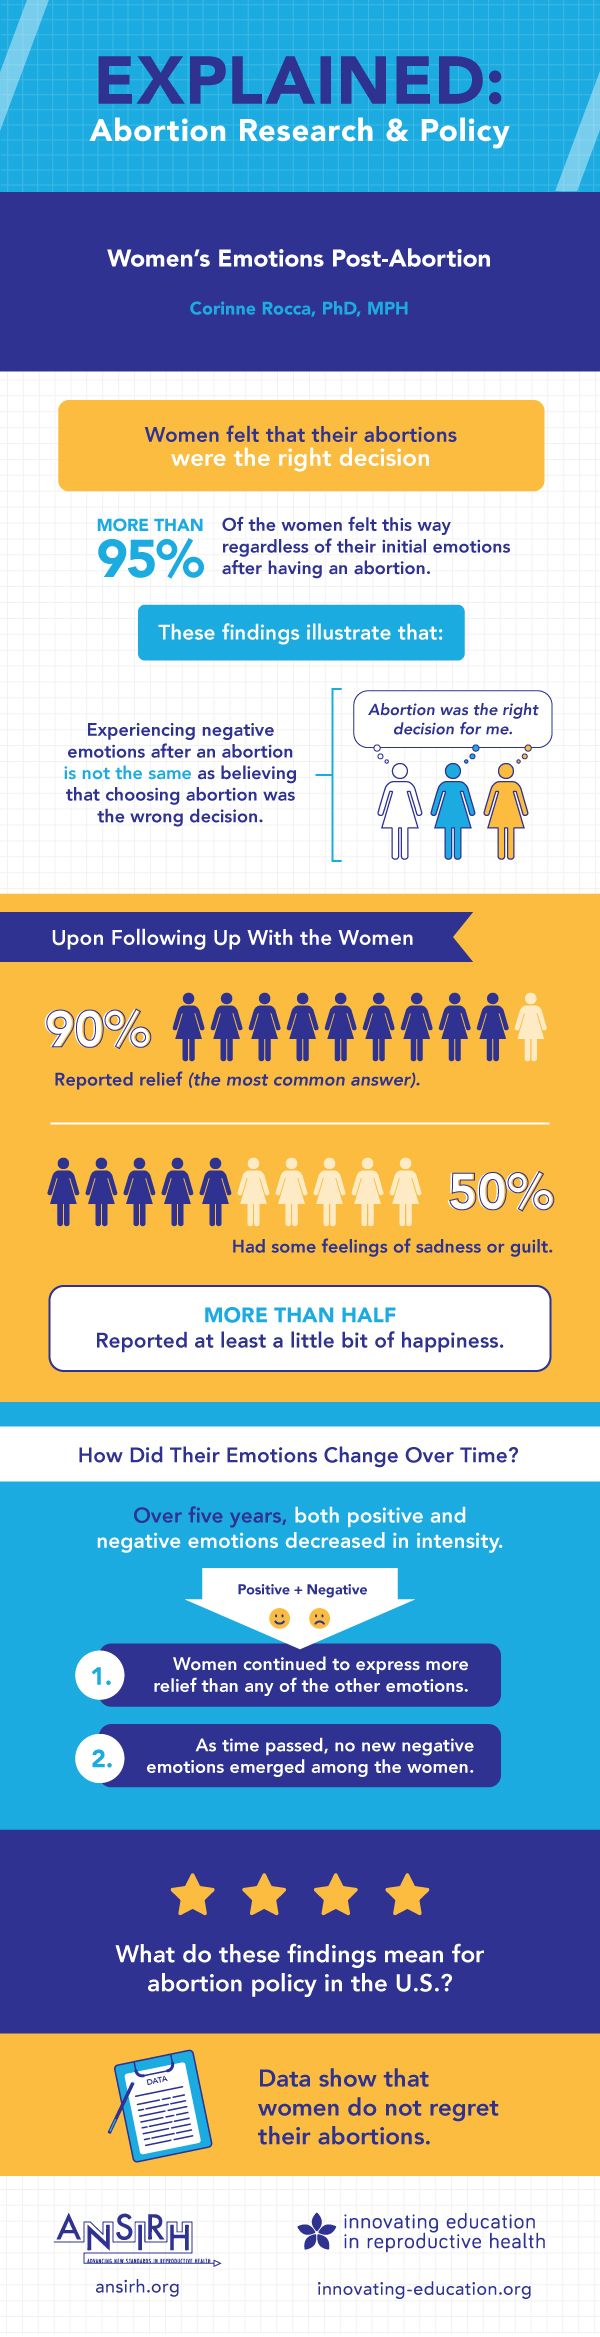 Women's Emotions After Abortion Infographic